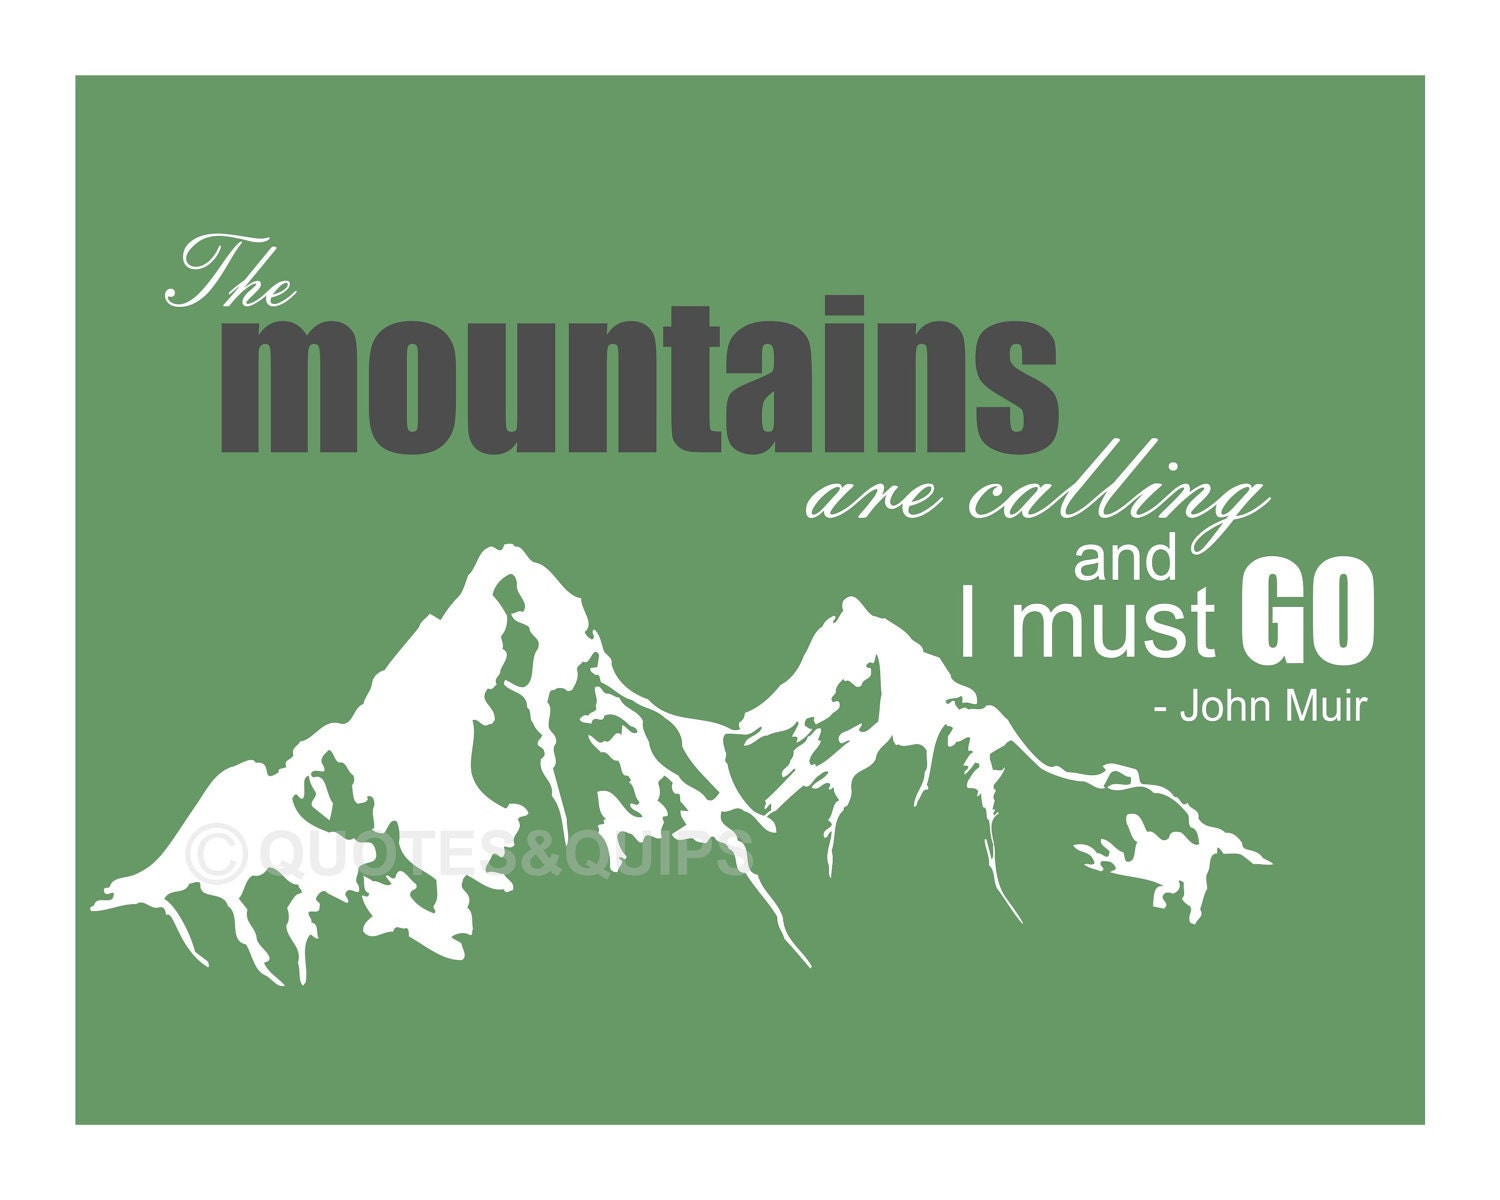 Design Poster Urging Mountaineers Preserve Pristine Glory Mountainsides